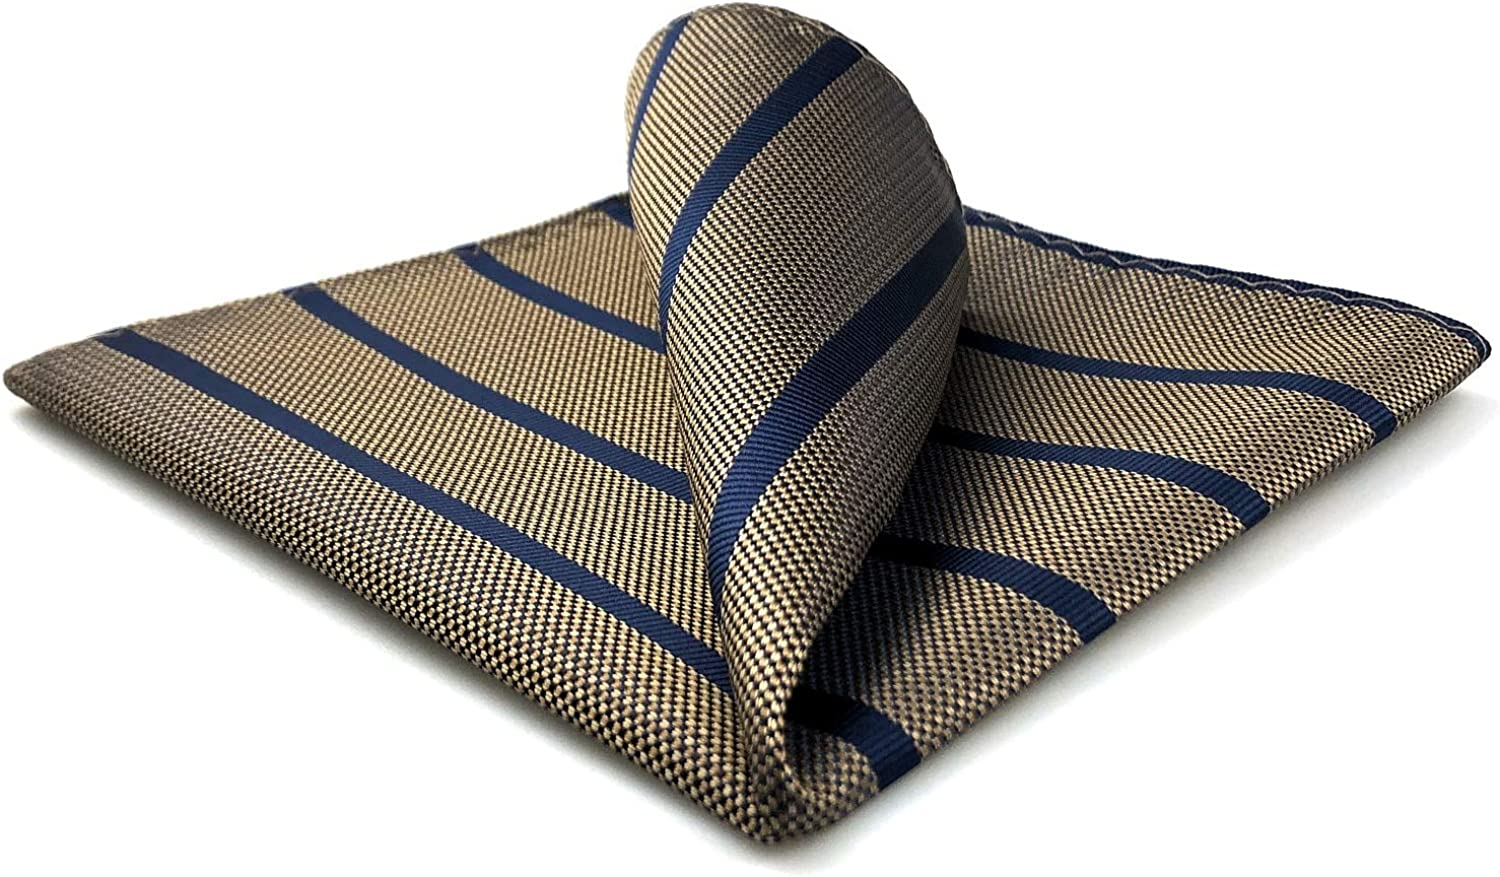 S&W SHLAX&WING Pocket Squares for Men Silk Brown Striped Blue